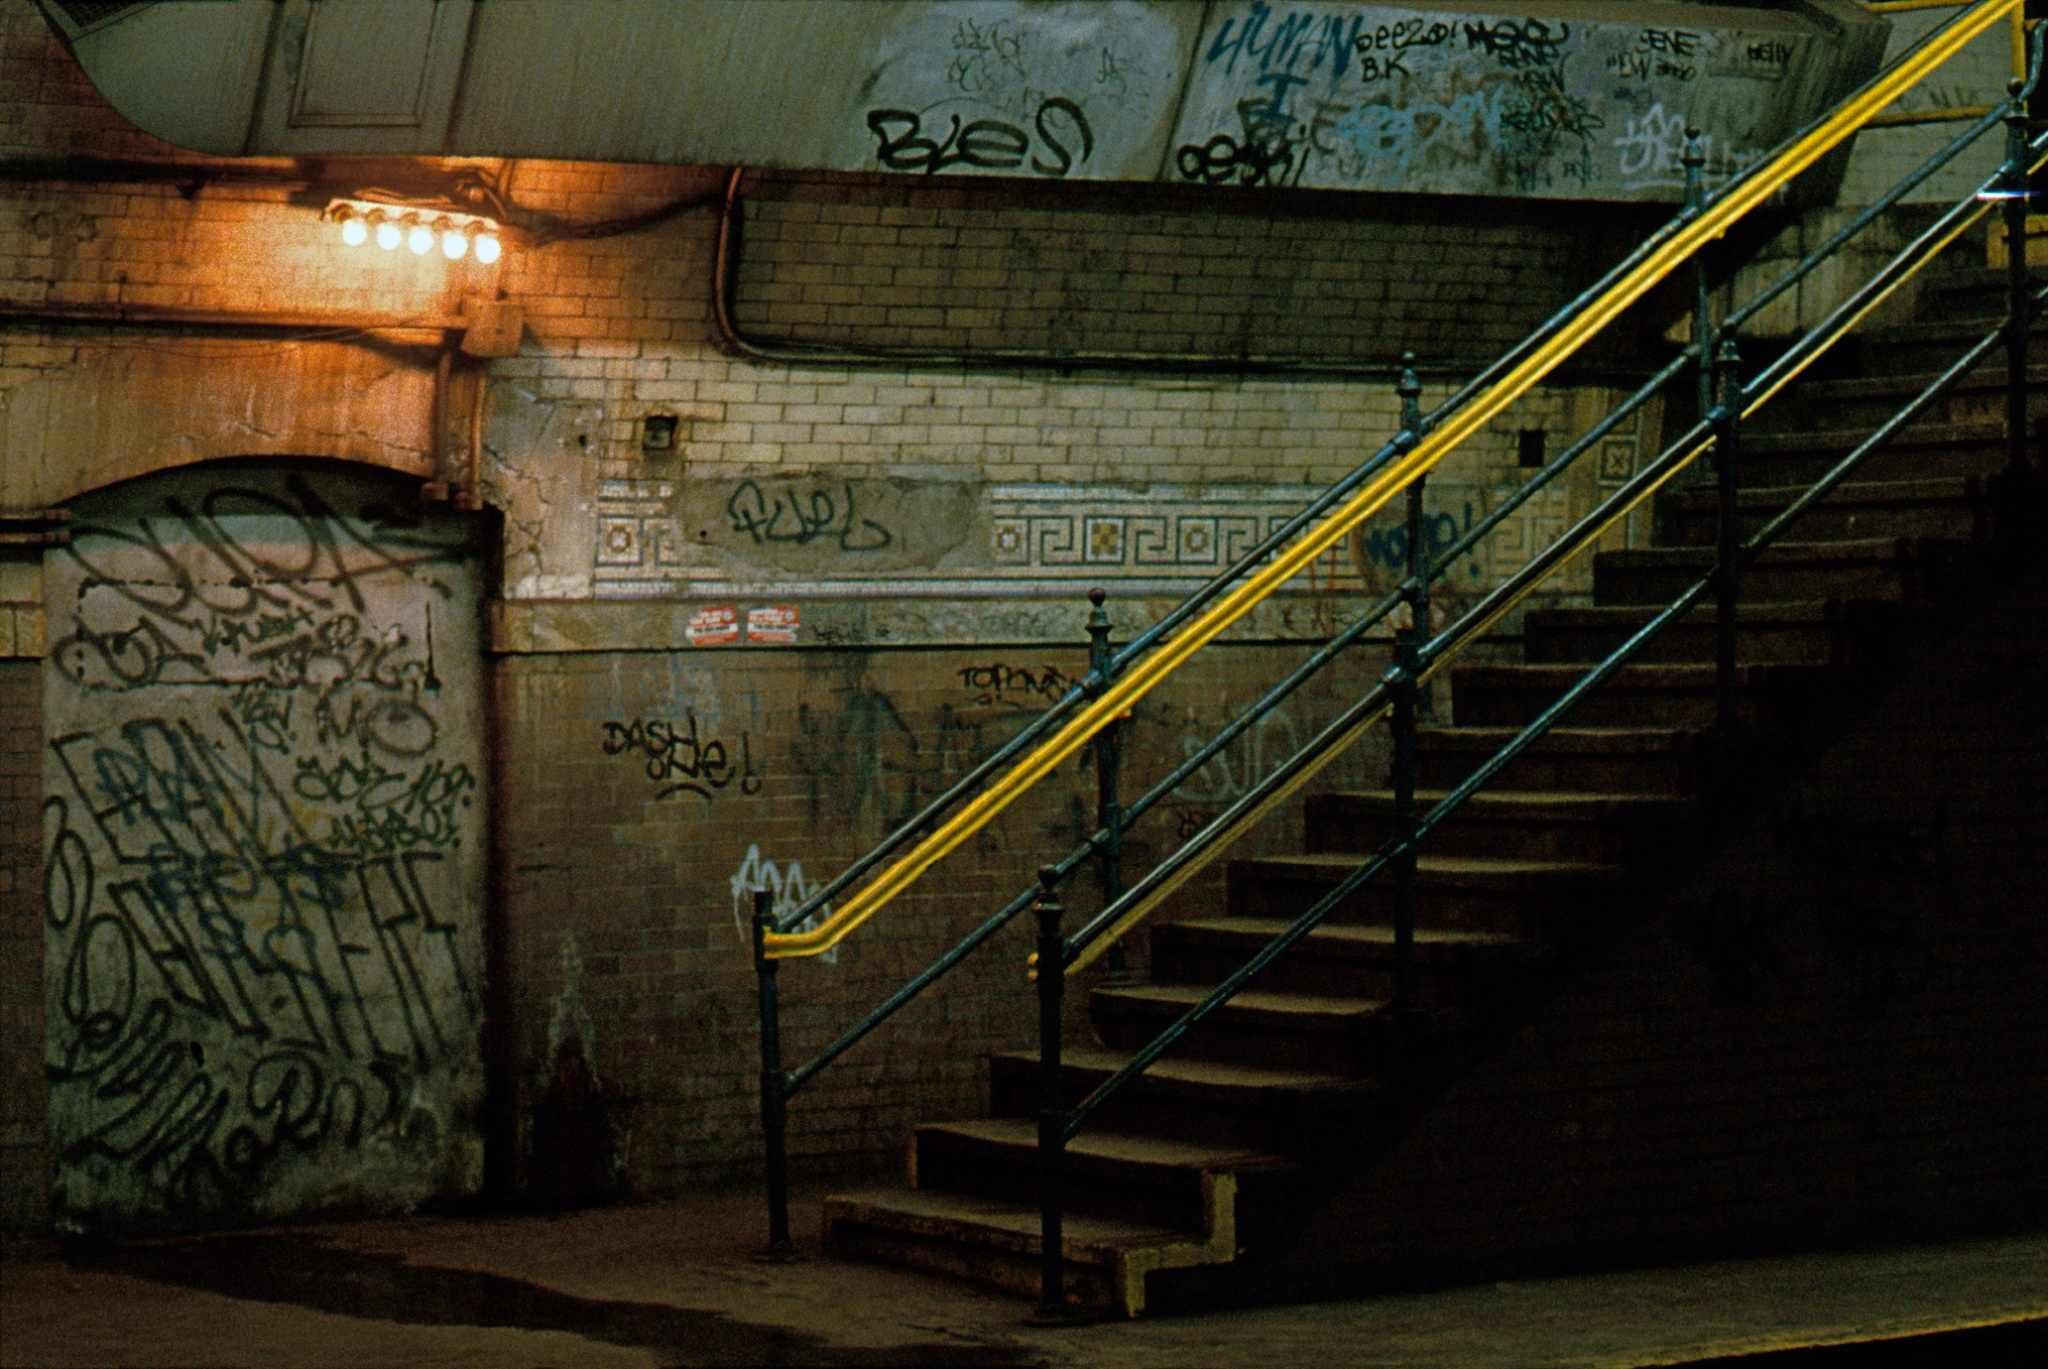 1983, New York, subway station, uptown